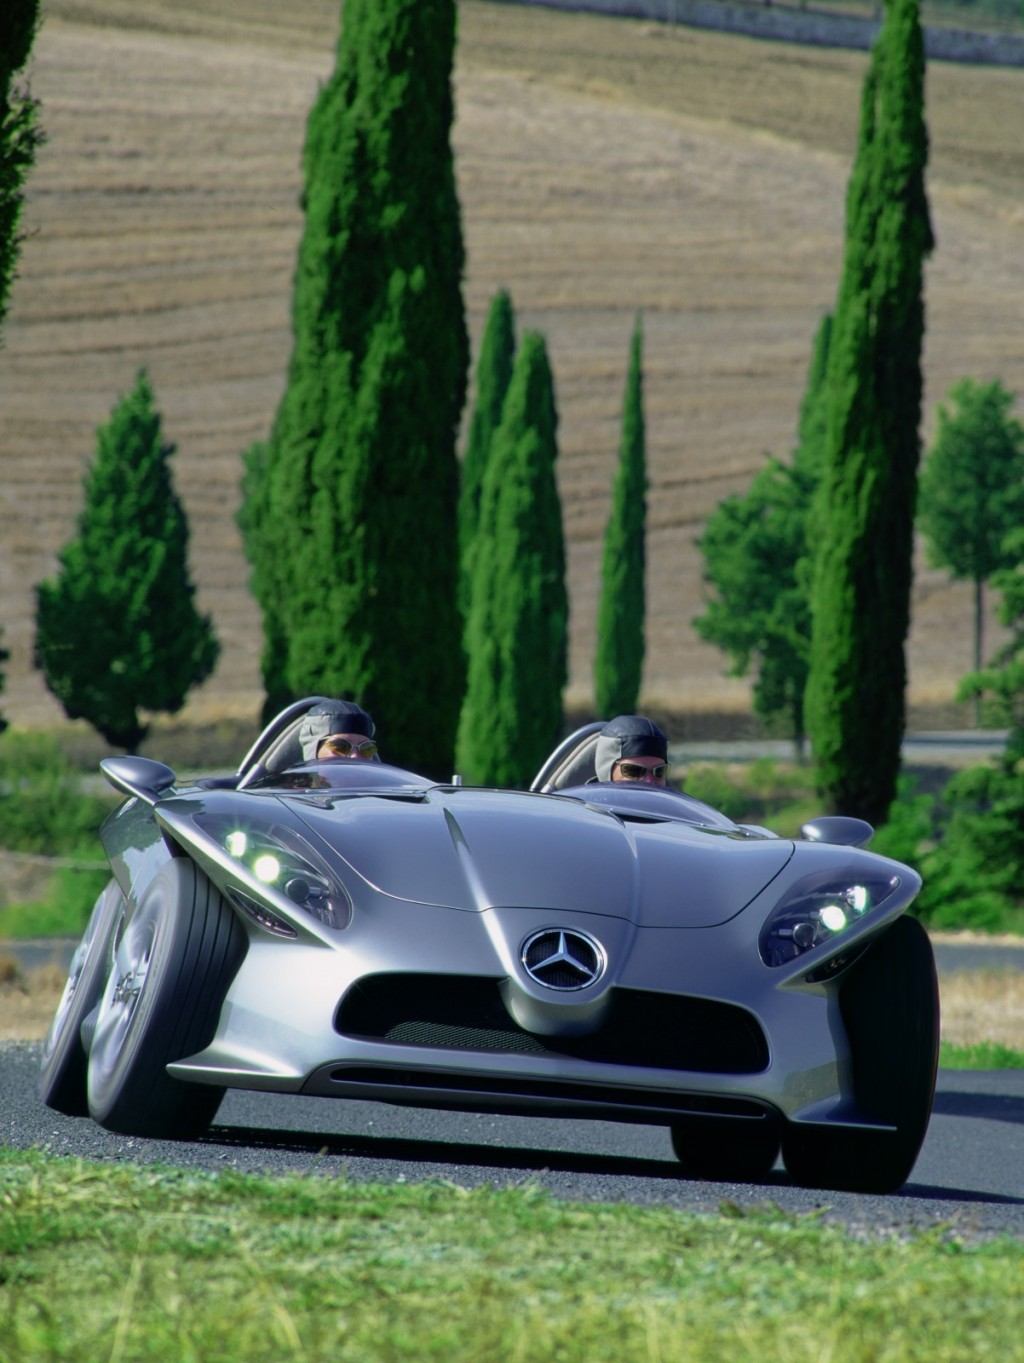 2001 Mercedes-Benz F400 Carving concept